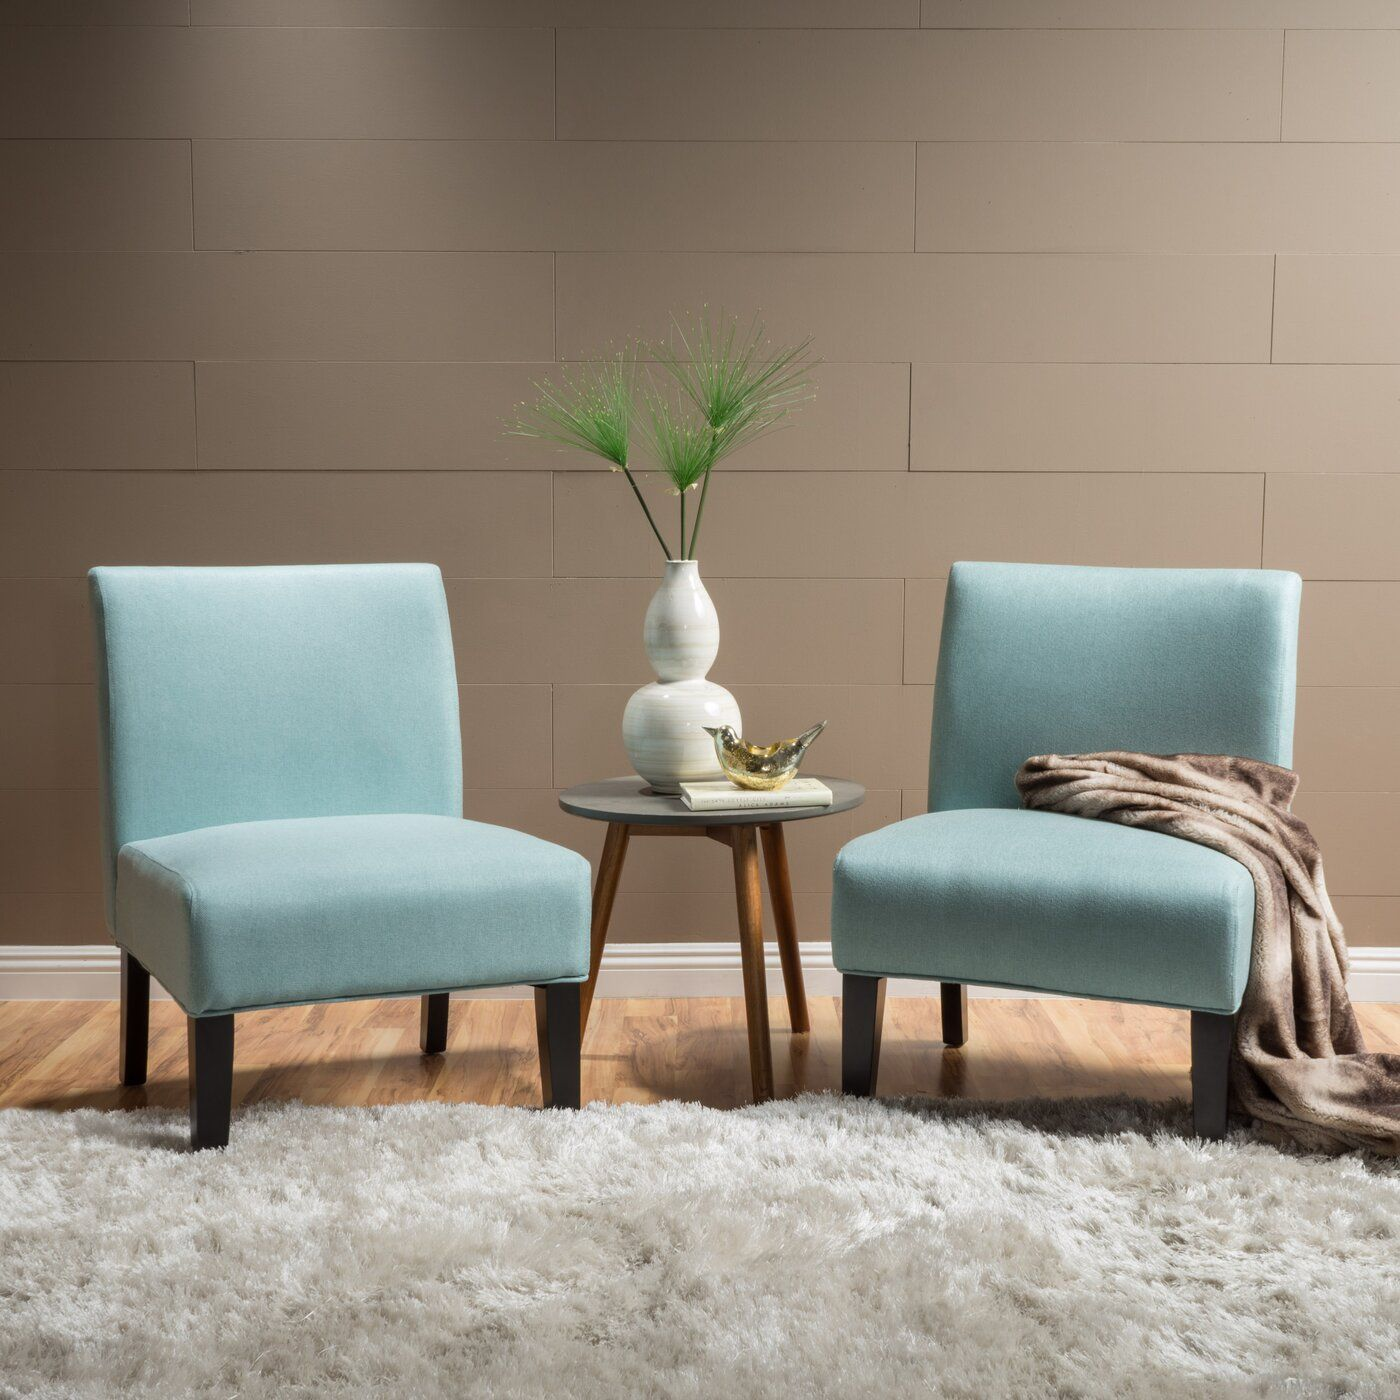 Yokota 22 5 Slipper Chair Accent Chair Set Accent Chairs Blue Accent Chairs #turquoise #living #room #chairs